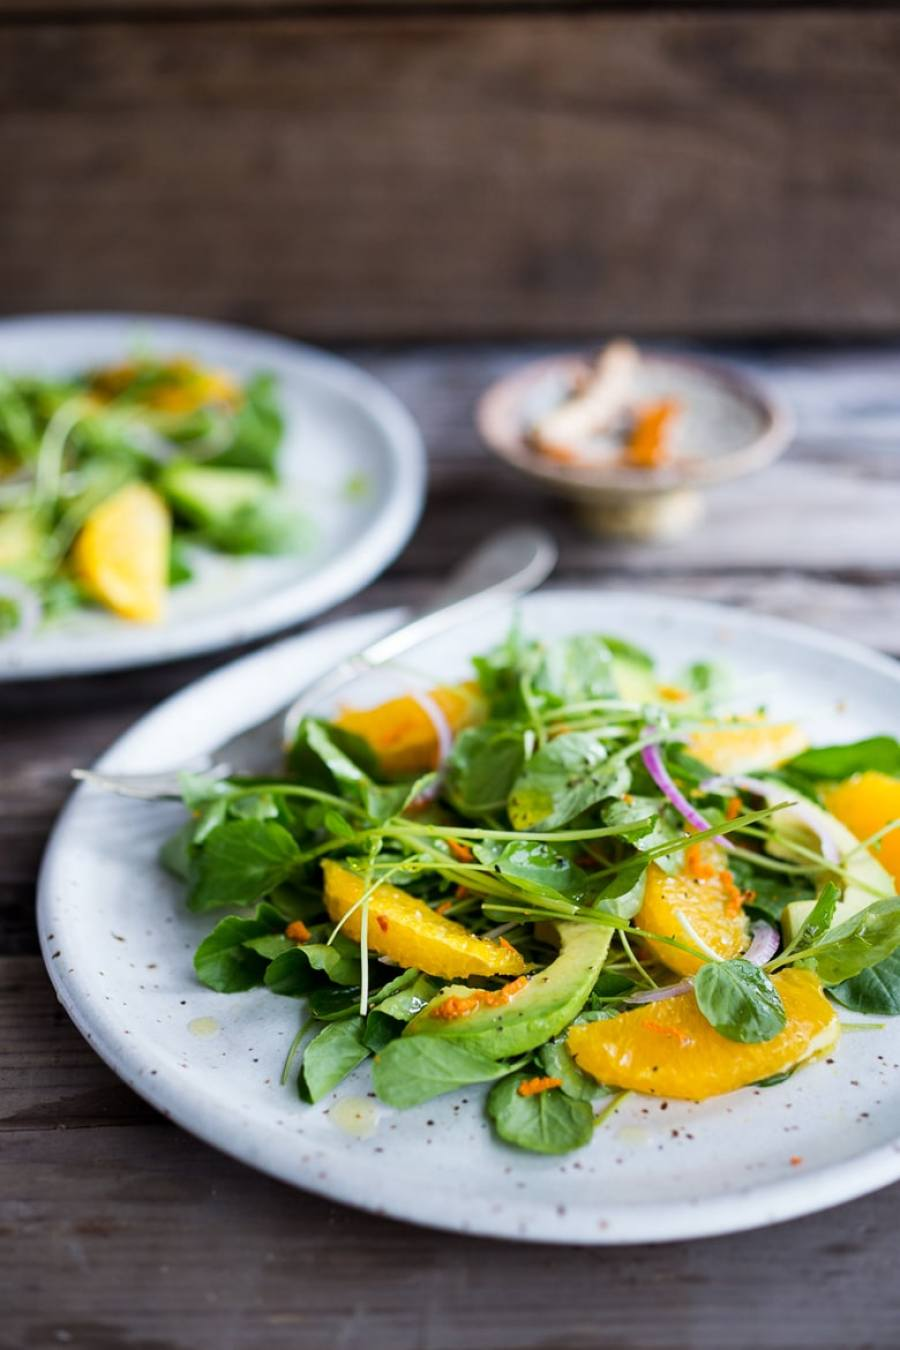 Cleansing Watercress Salad with Citrus, Avocado & Turmeric Dressing | www.feastingathome.com